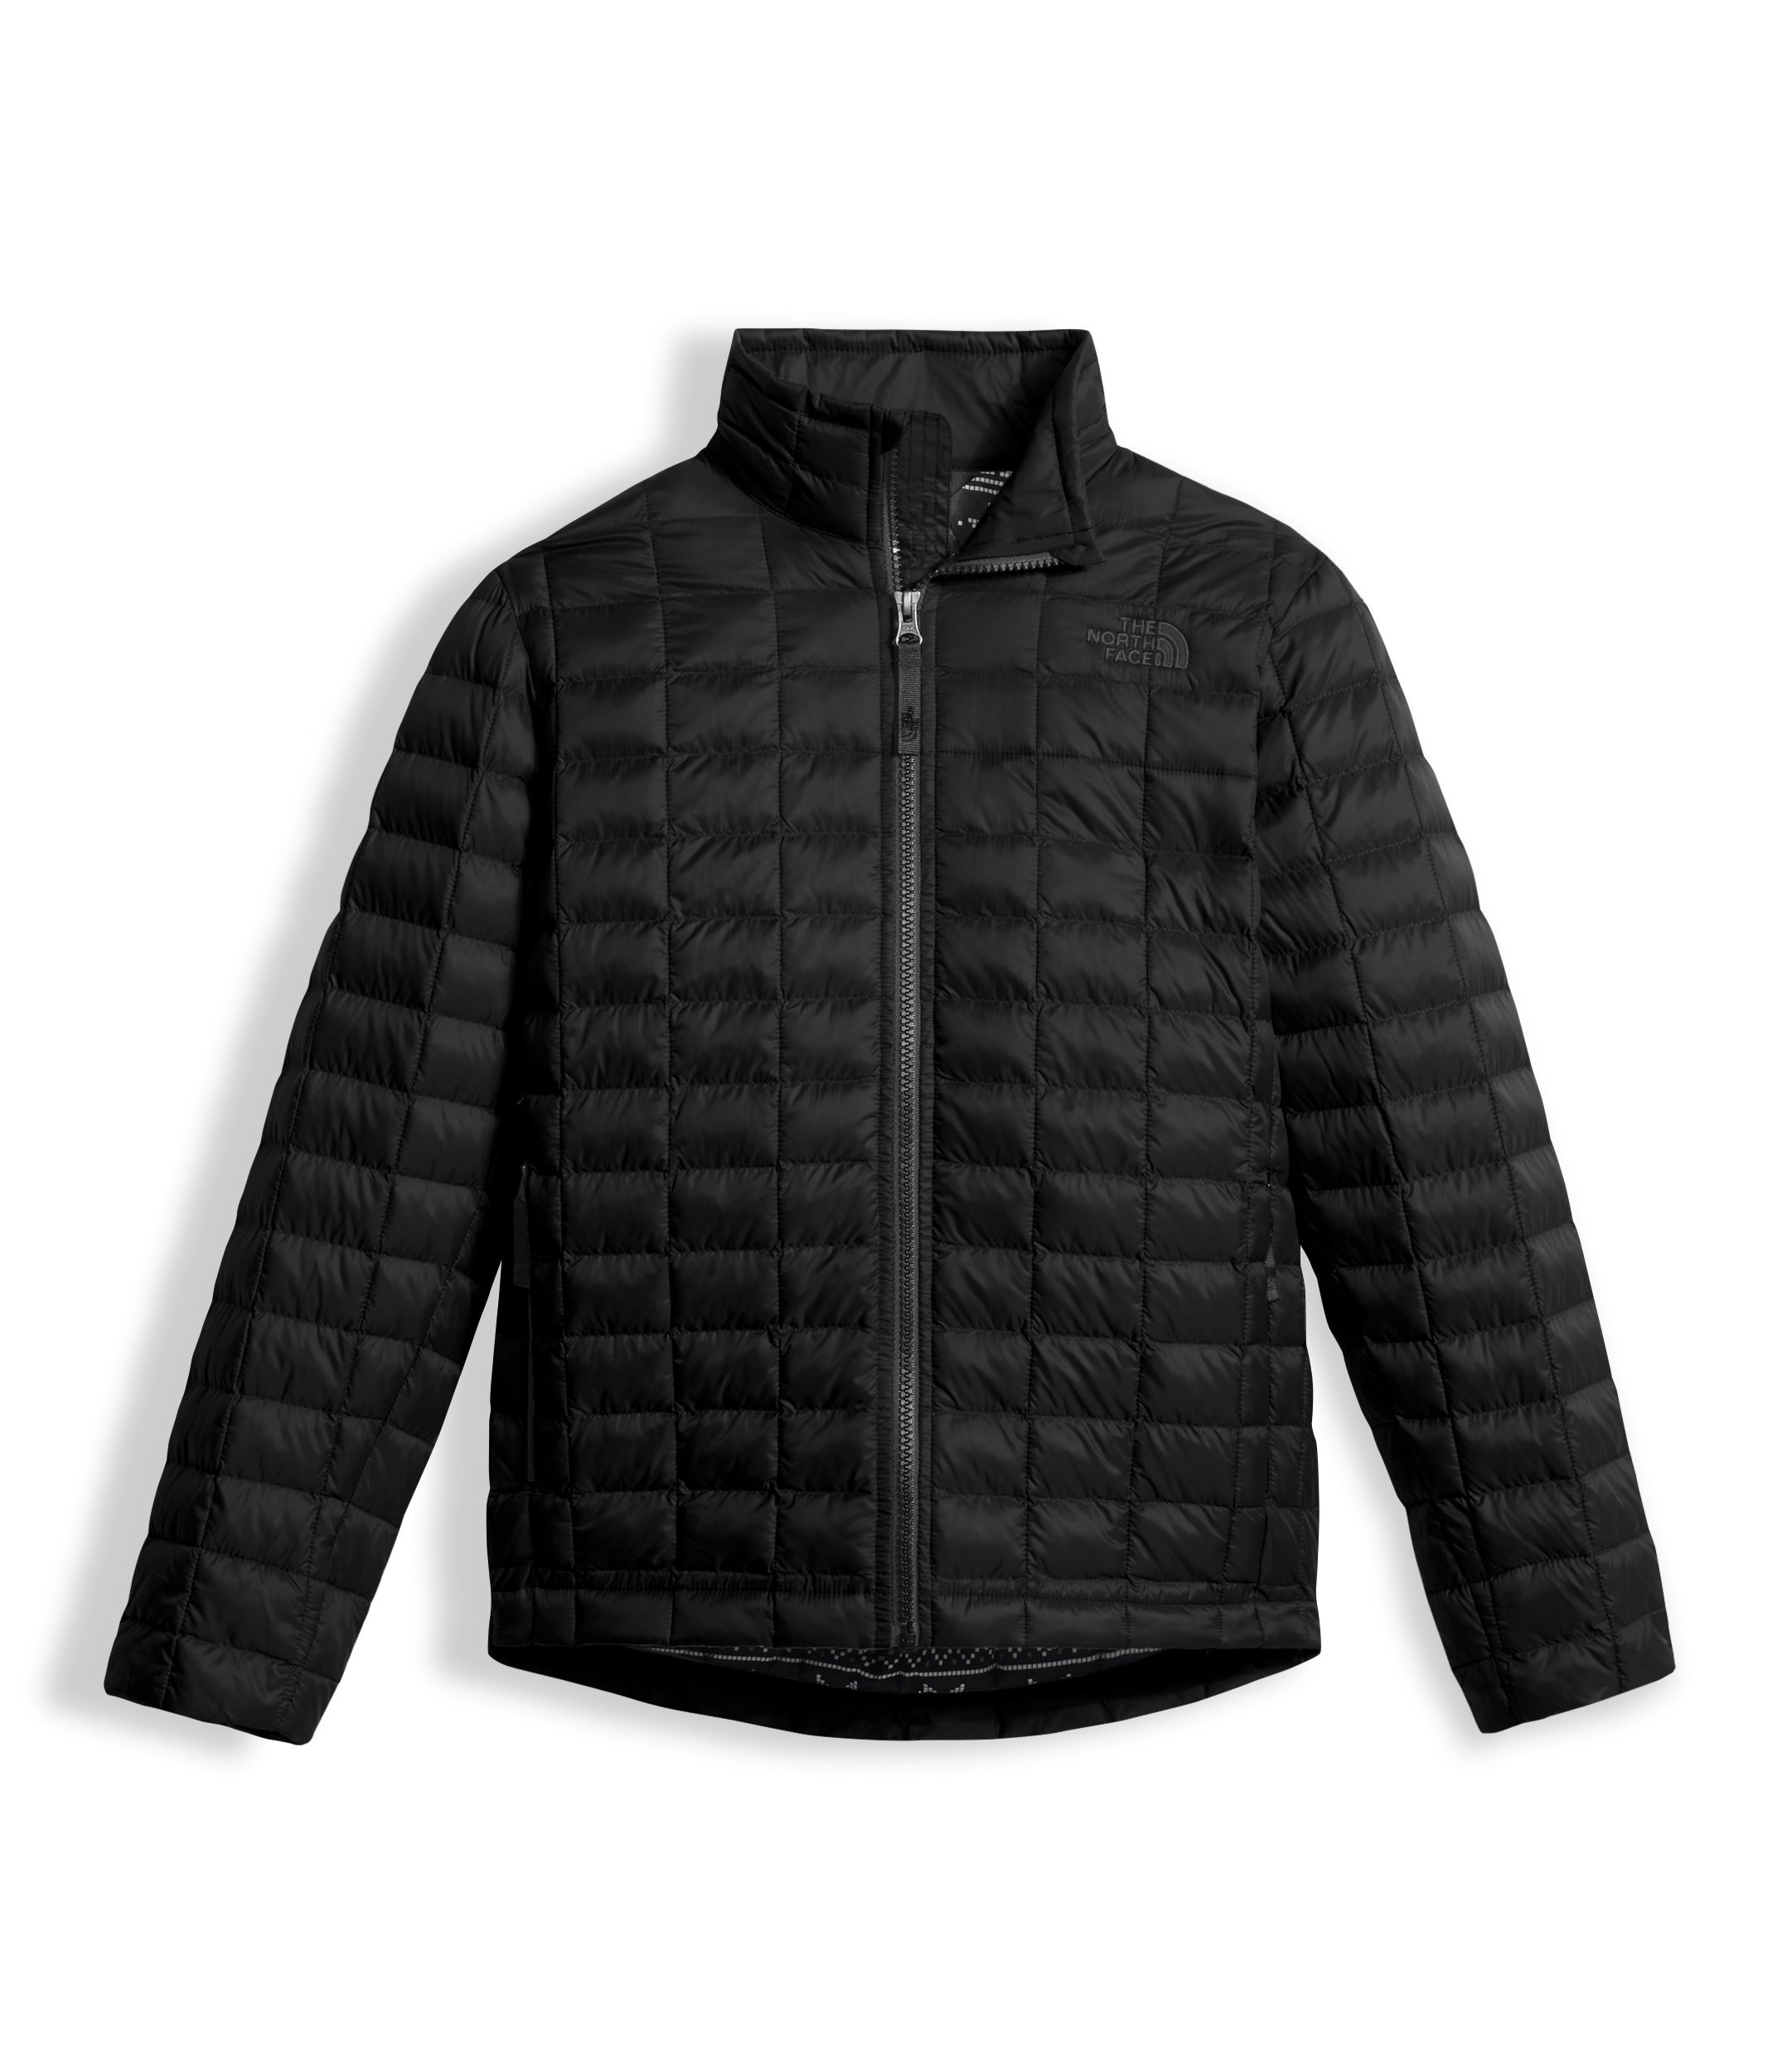 The North Face Boys Thermoball Full Zip Jacket Black (Large) by The North Face